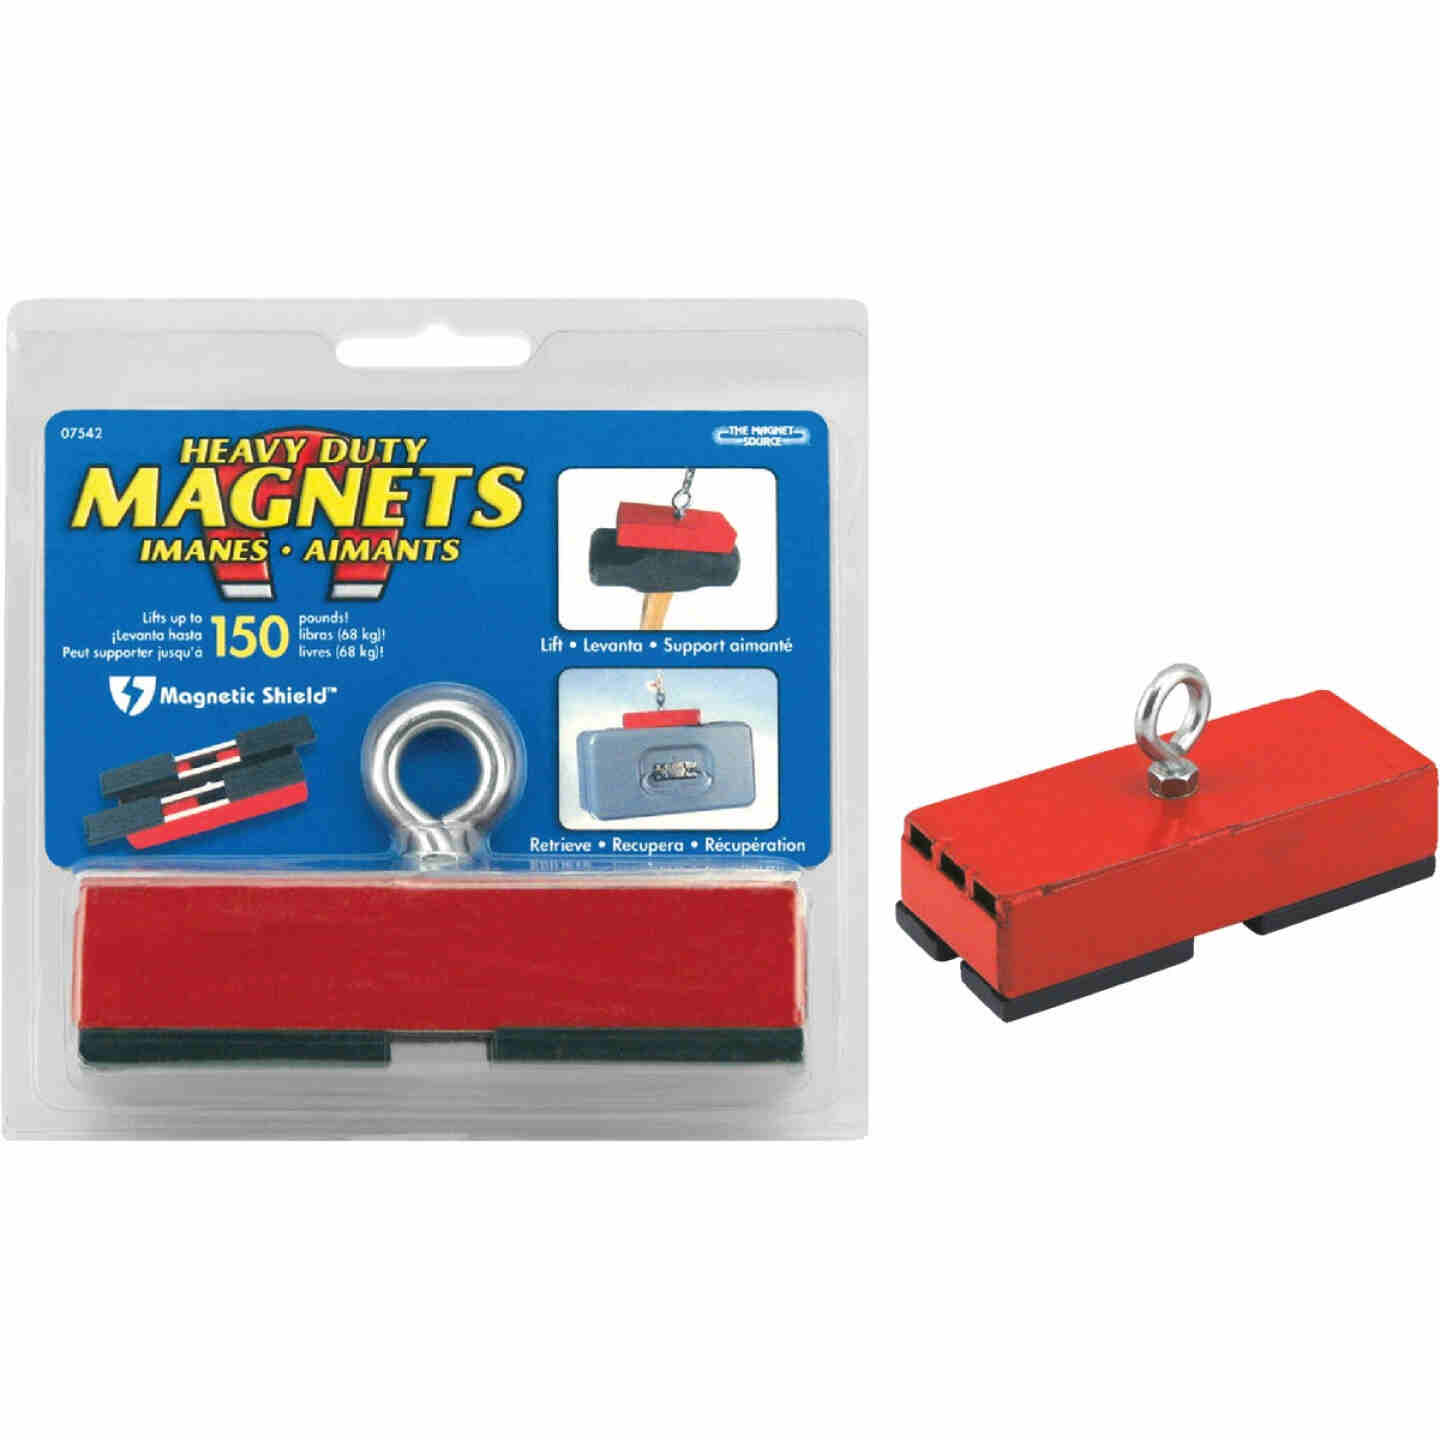 Master Magnetics 5 in. 150 Lb. Heavy Duty Retrieving Magnet Image 1